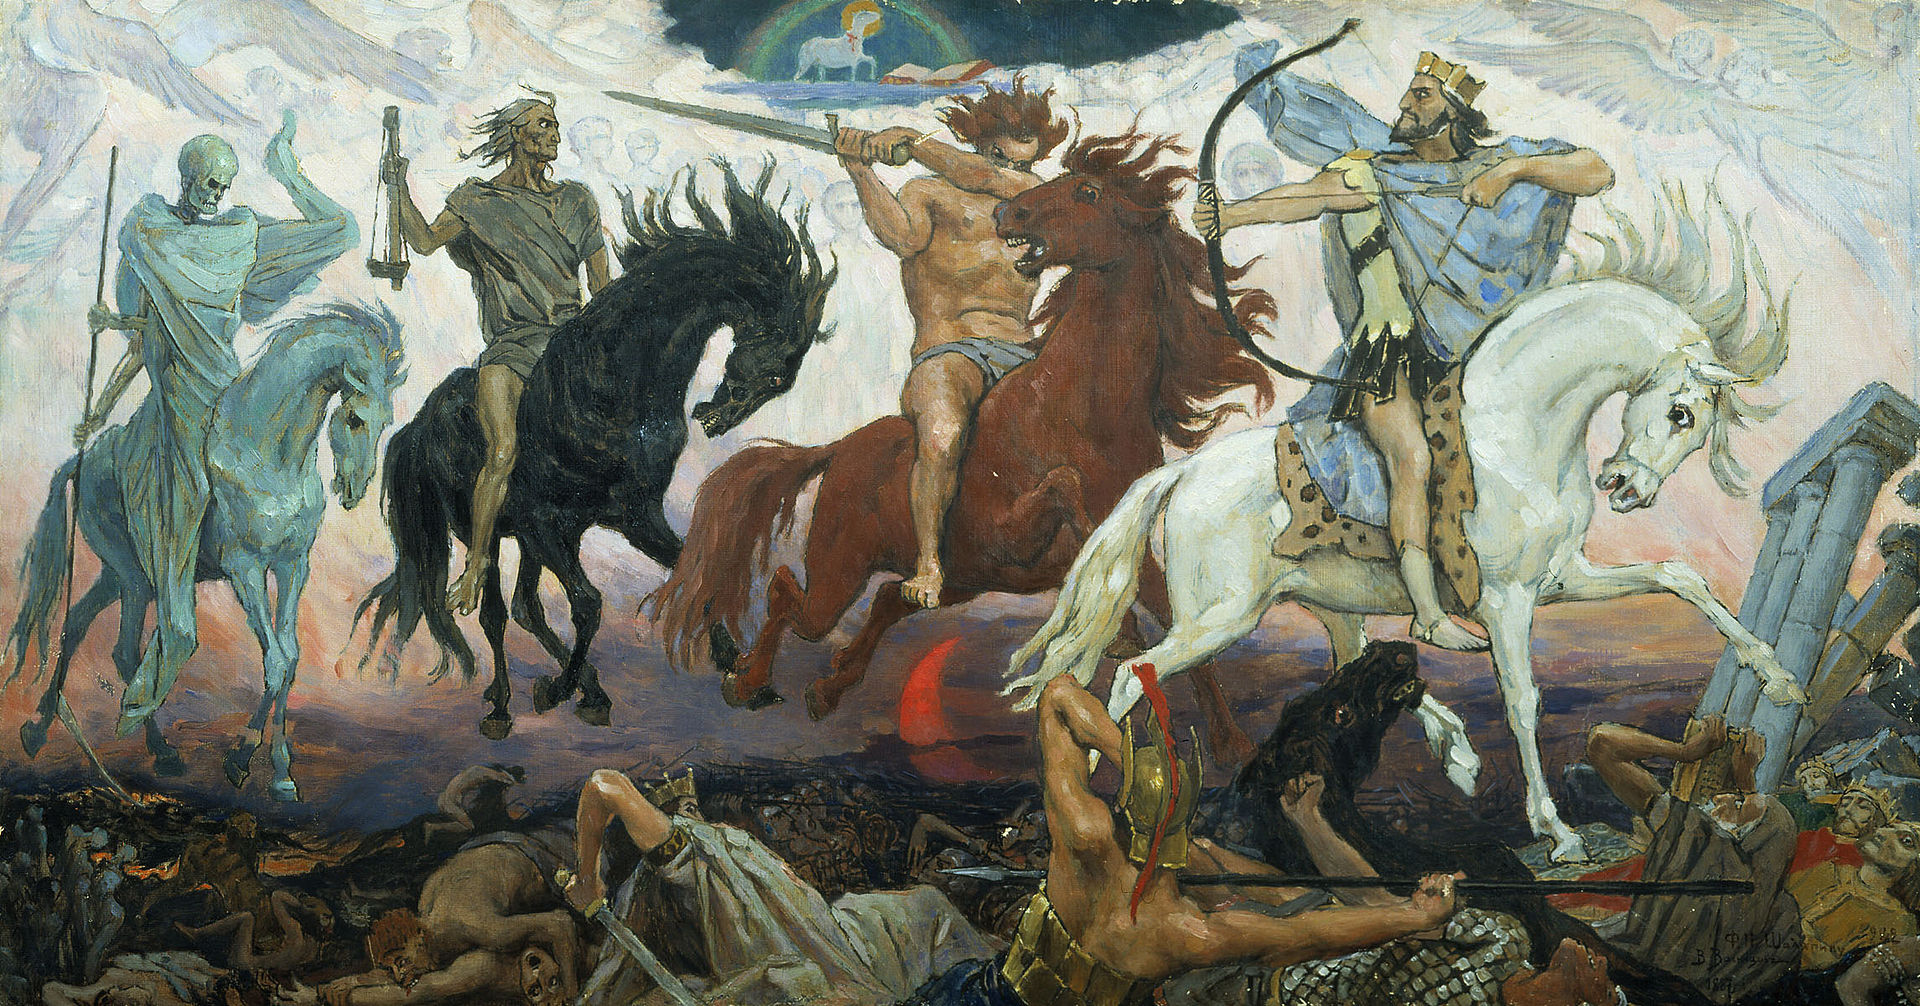 Four Horsemen of the Apocalypse - Conquest, War, Famine & Death, an 1887 painting by Victor Vasnetsov. The Lamb is visible at the top. Credit